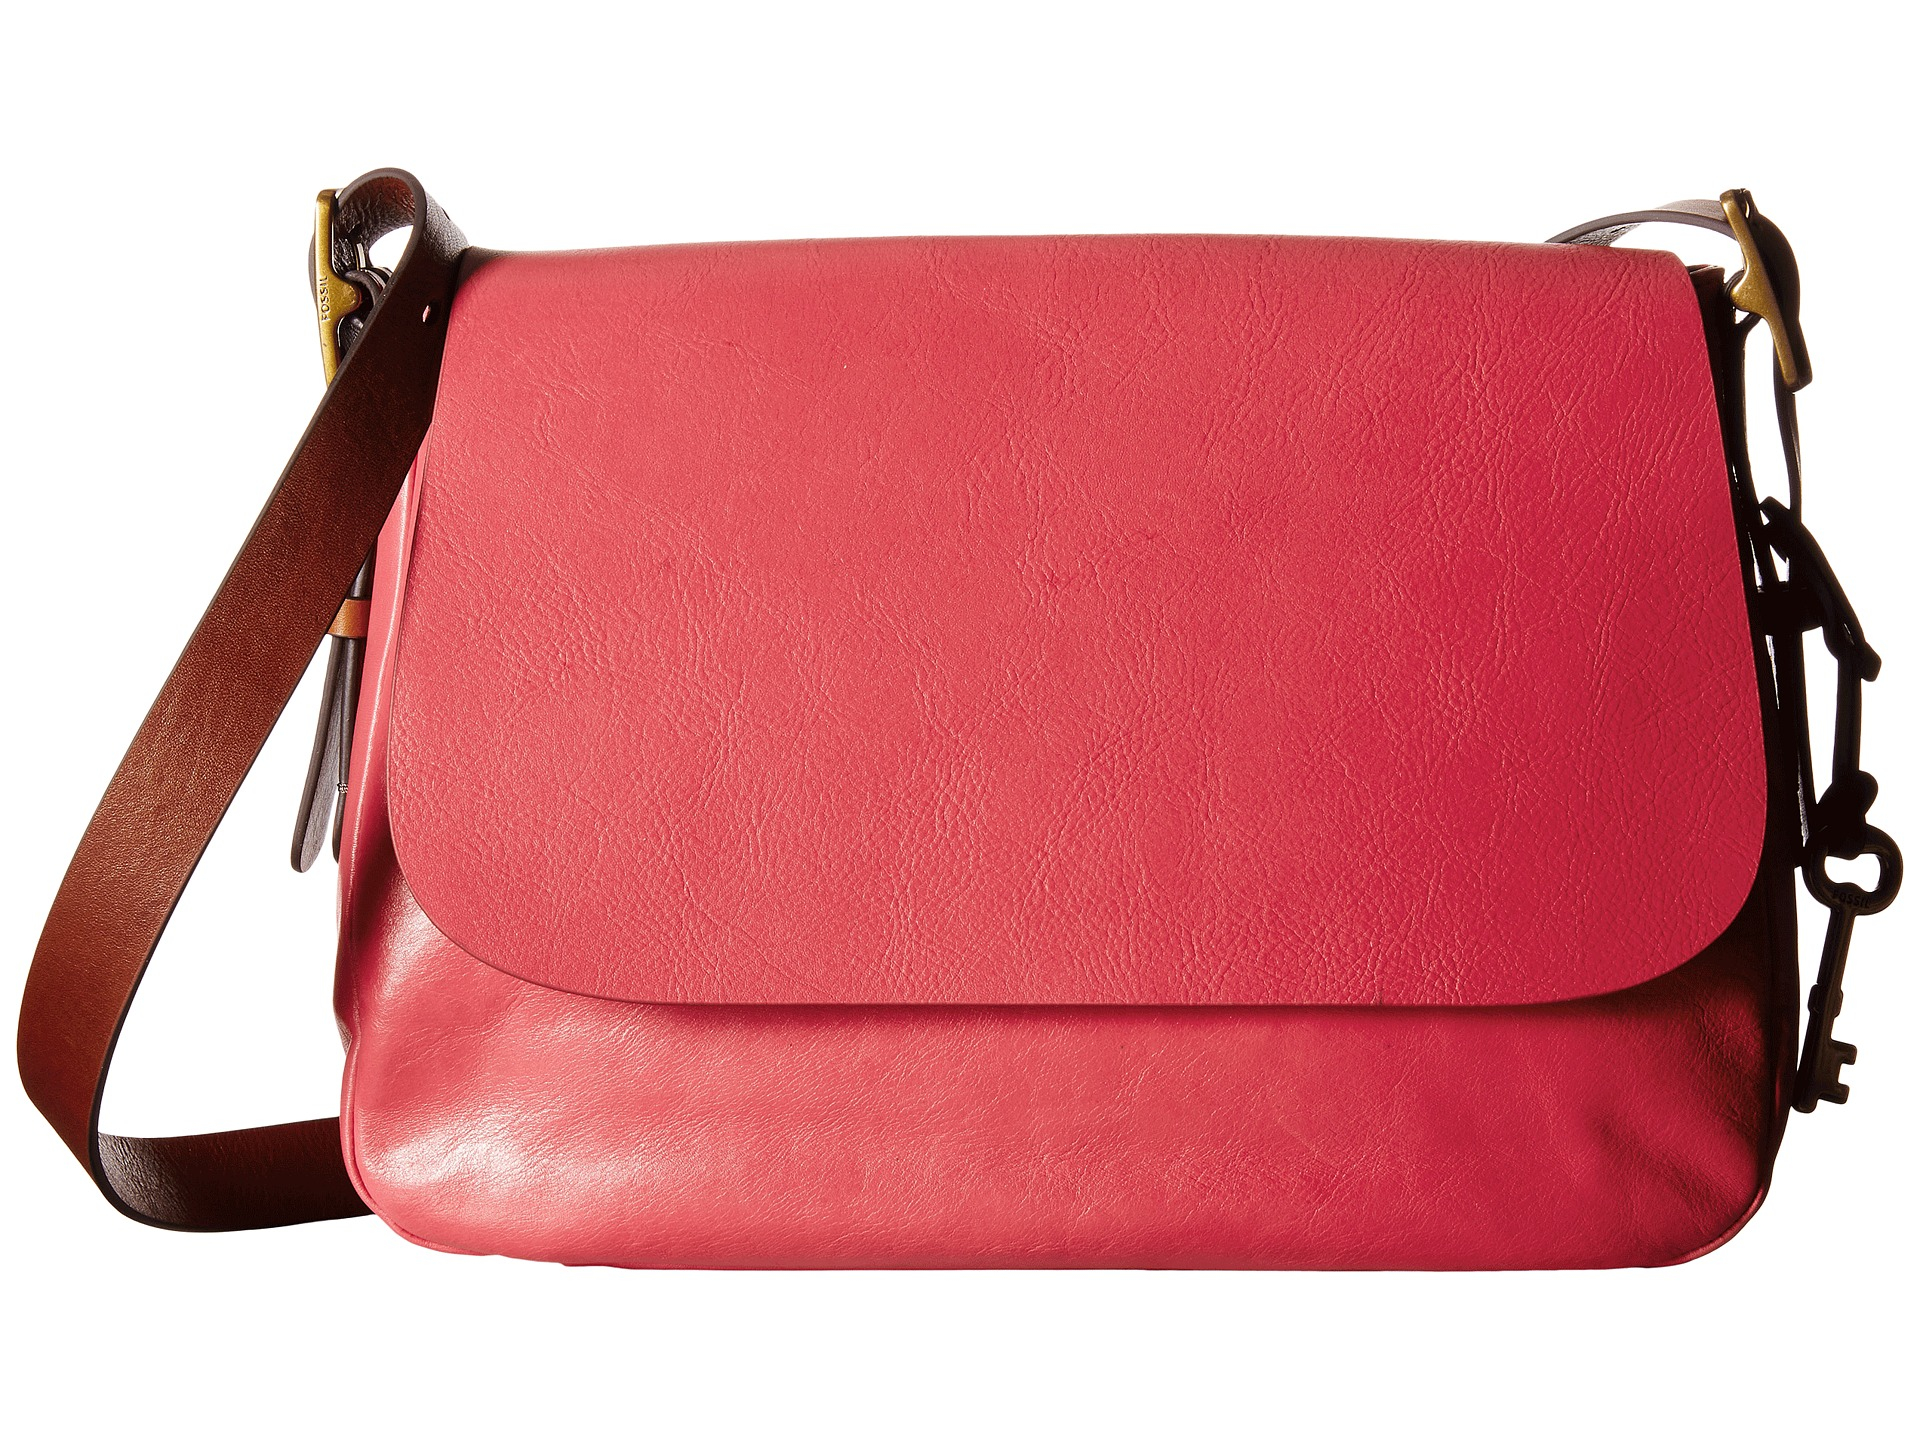 b5a5a8481eeb6 Lyst - Fossil Harper Large Saddle Crossbody in Red